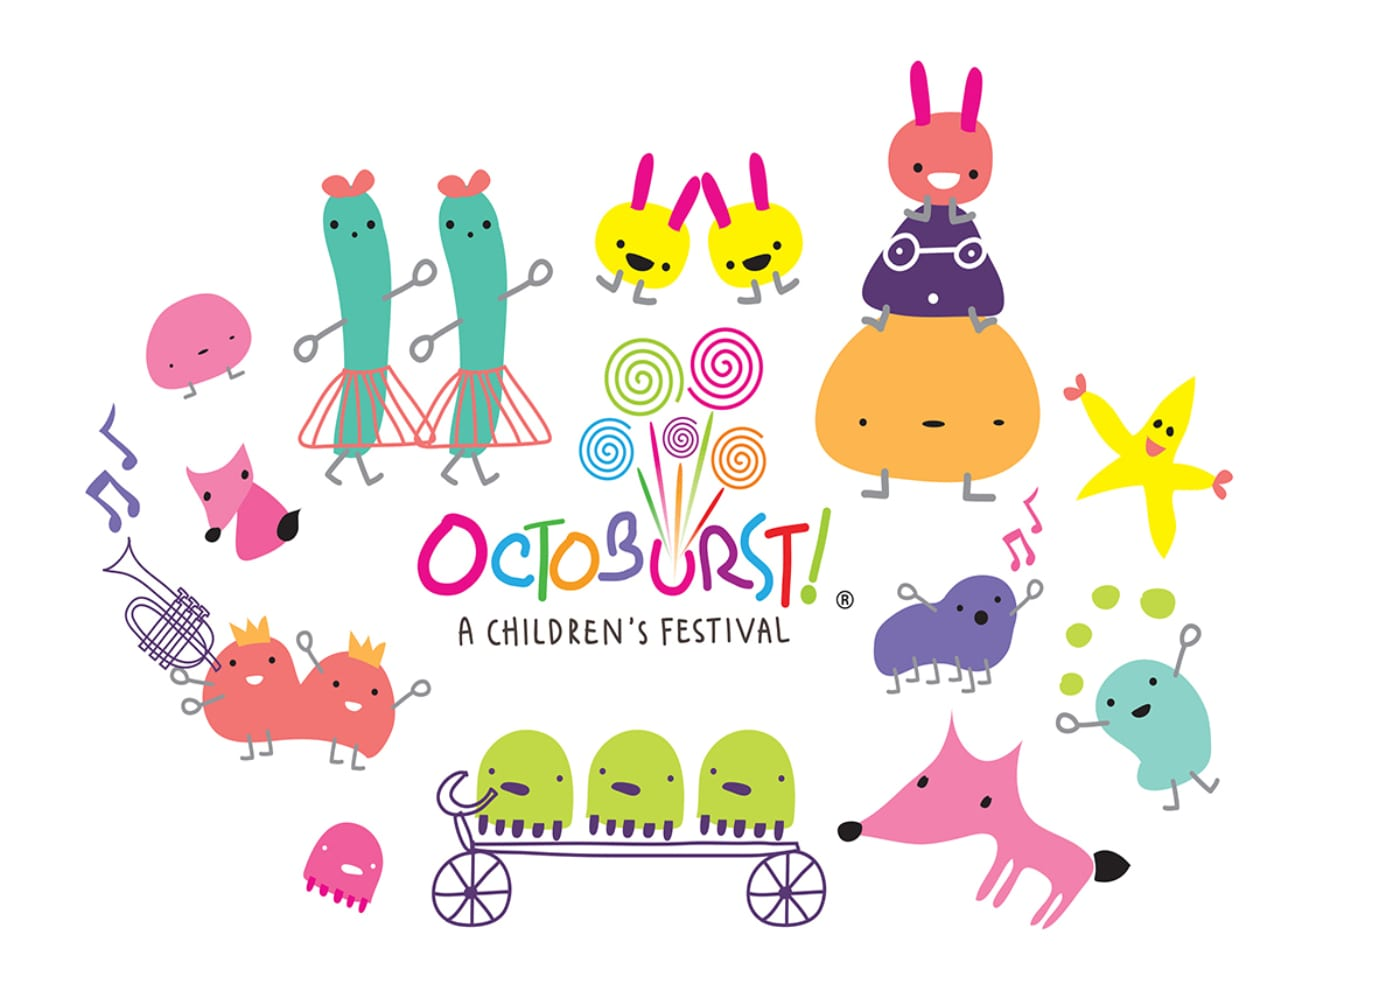 Octoburst! A Children's Festival | Children's Day 2019: Where to celebrate with the kids in Singapore